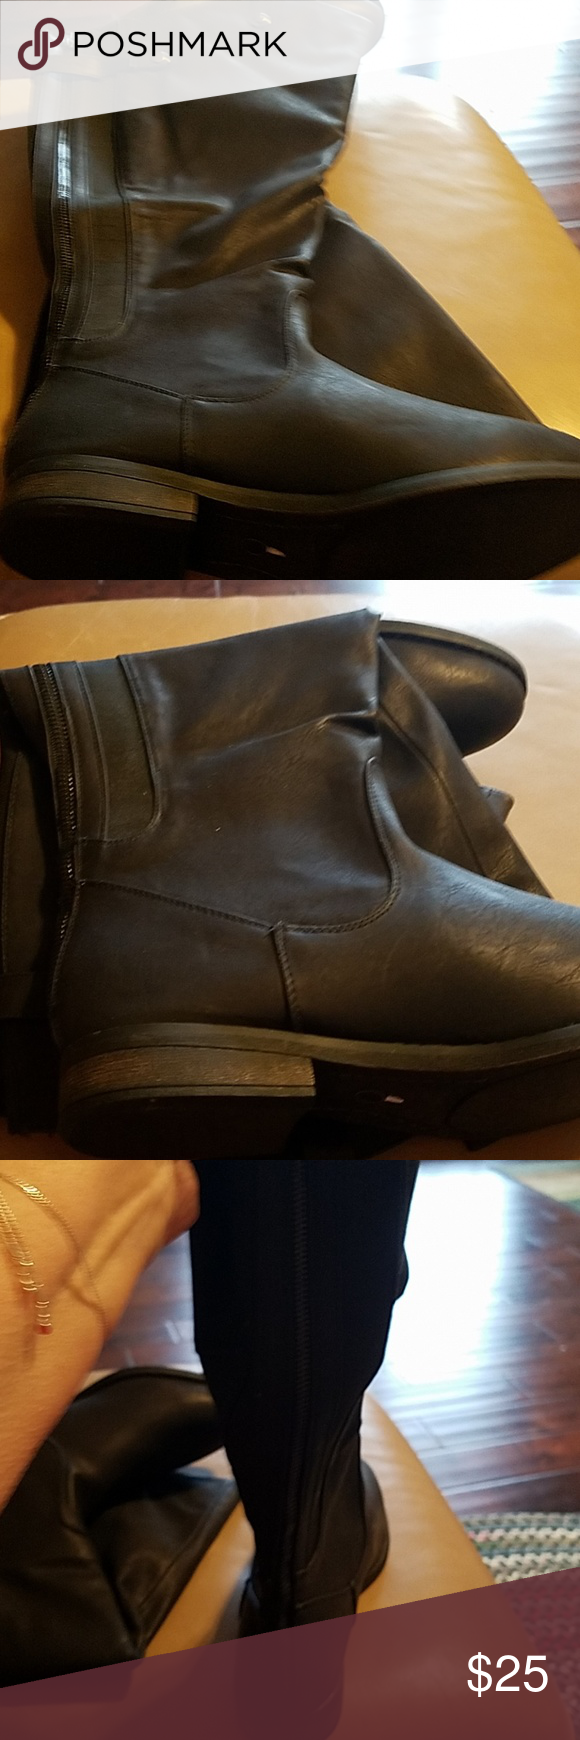 1ca4fbe9ea03 Black Knee High Boots Black boots. Zips up back. Has snaps in back to  adjust. Wide Calf. Lane Bryant Shoes Over the Knee Boots